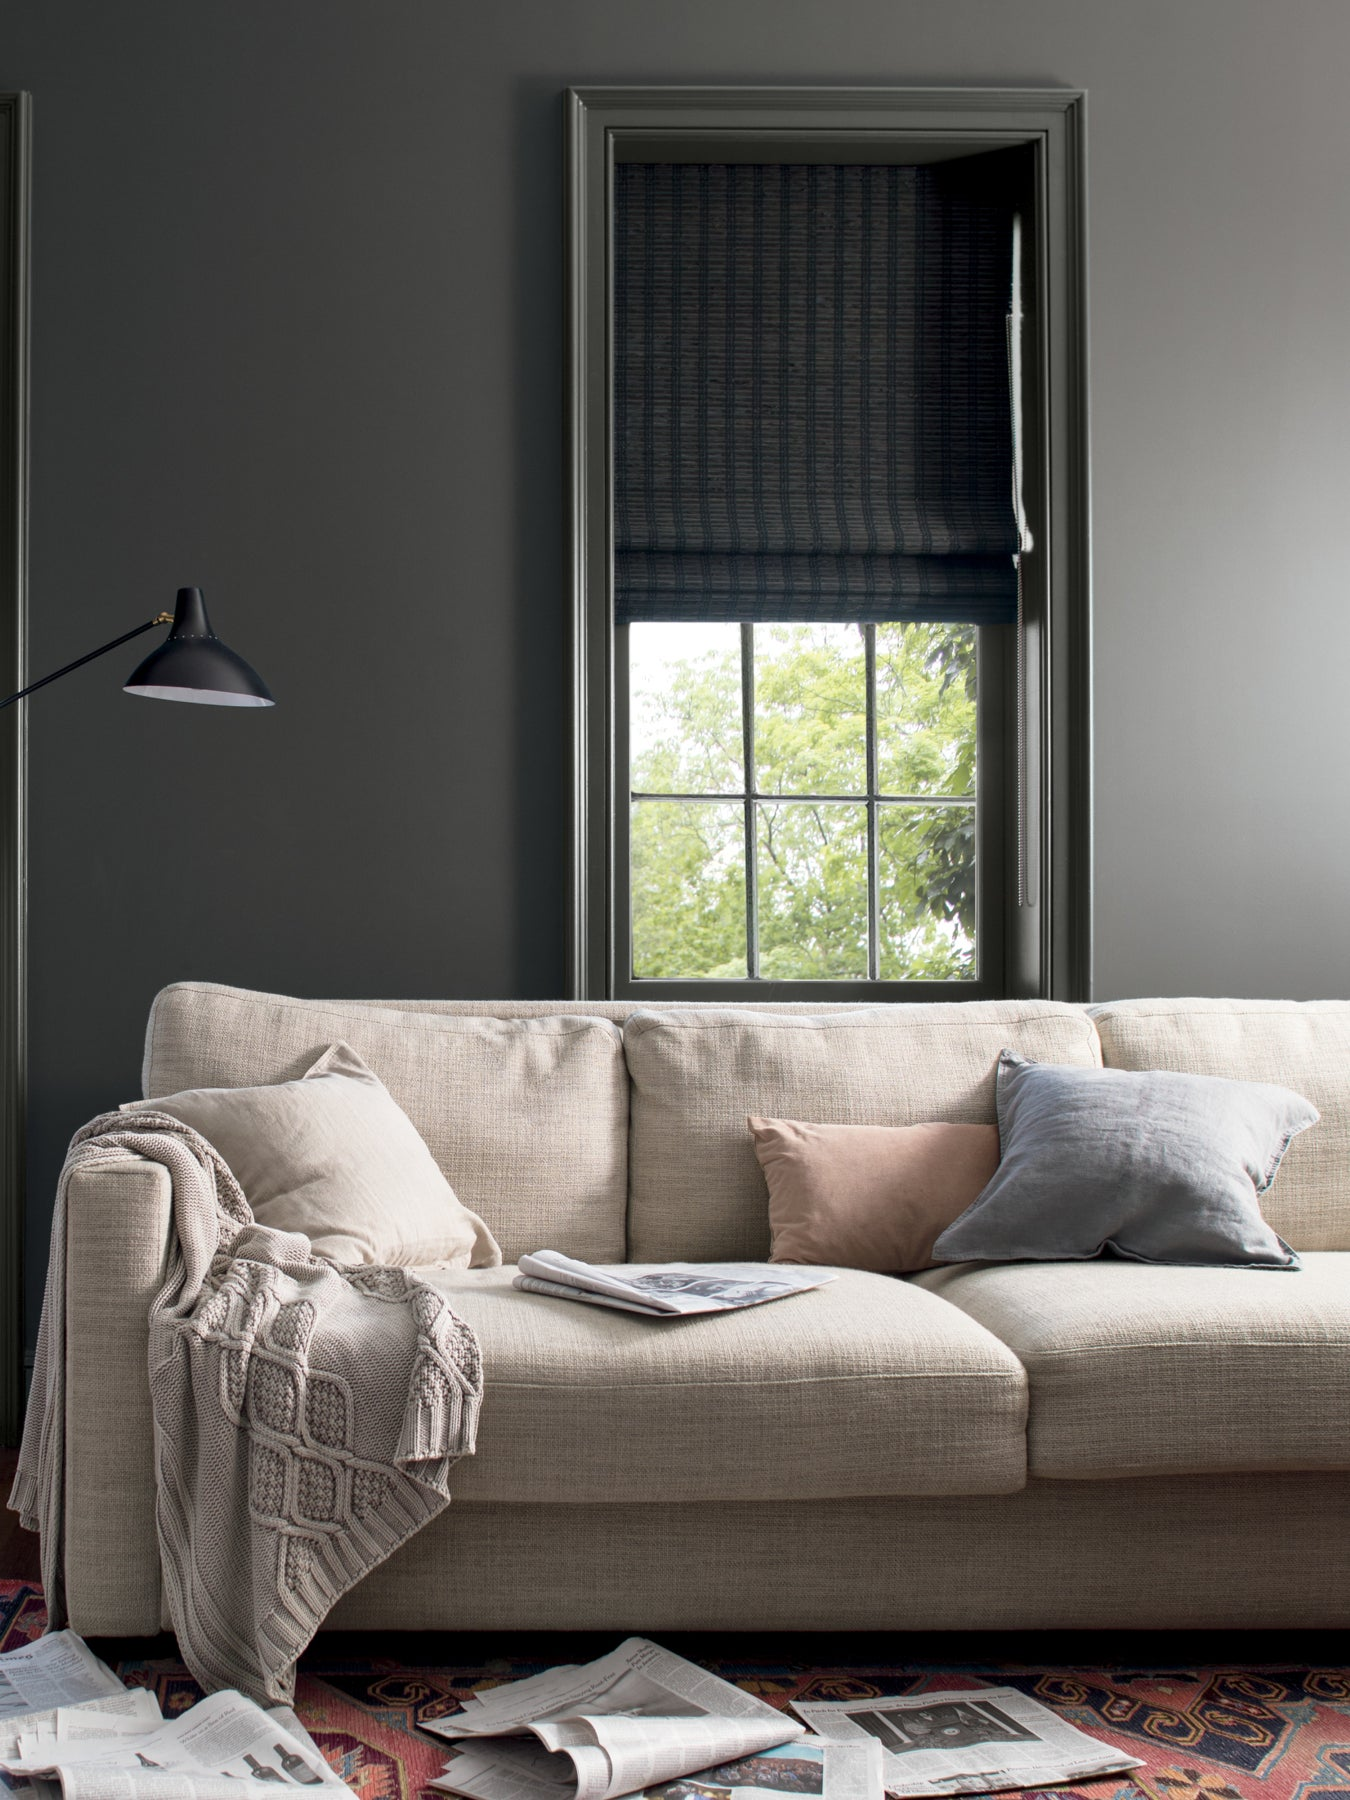 Benjamin Moore's 2019 Color of the Year Was Not What We Expected